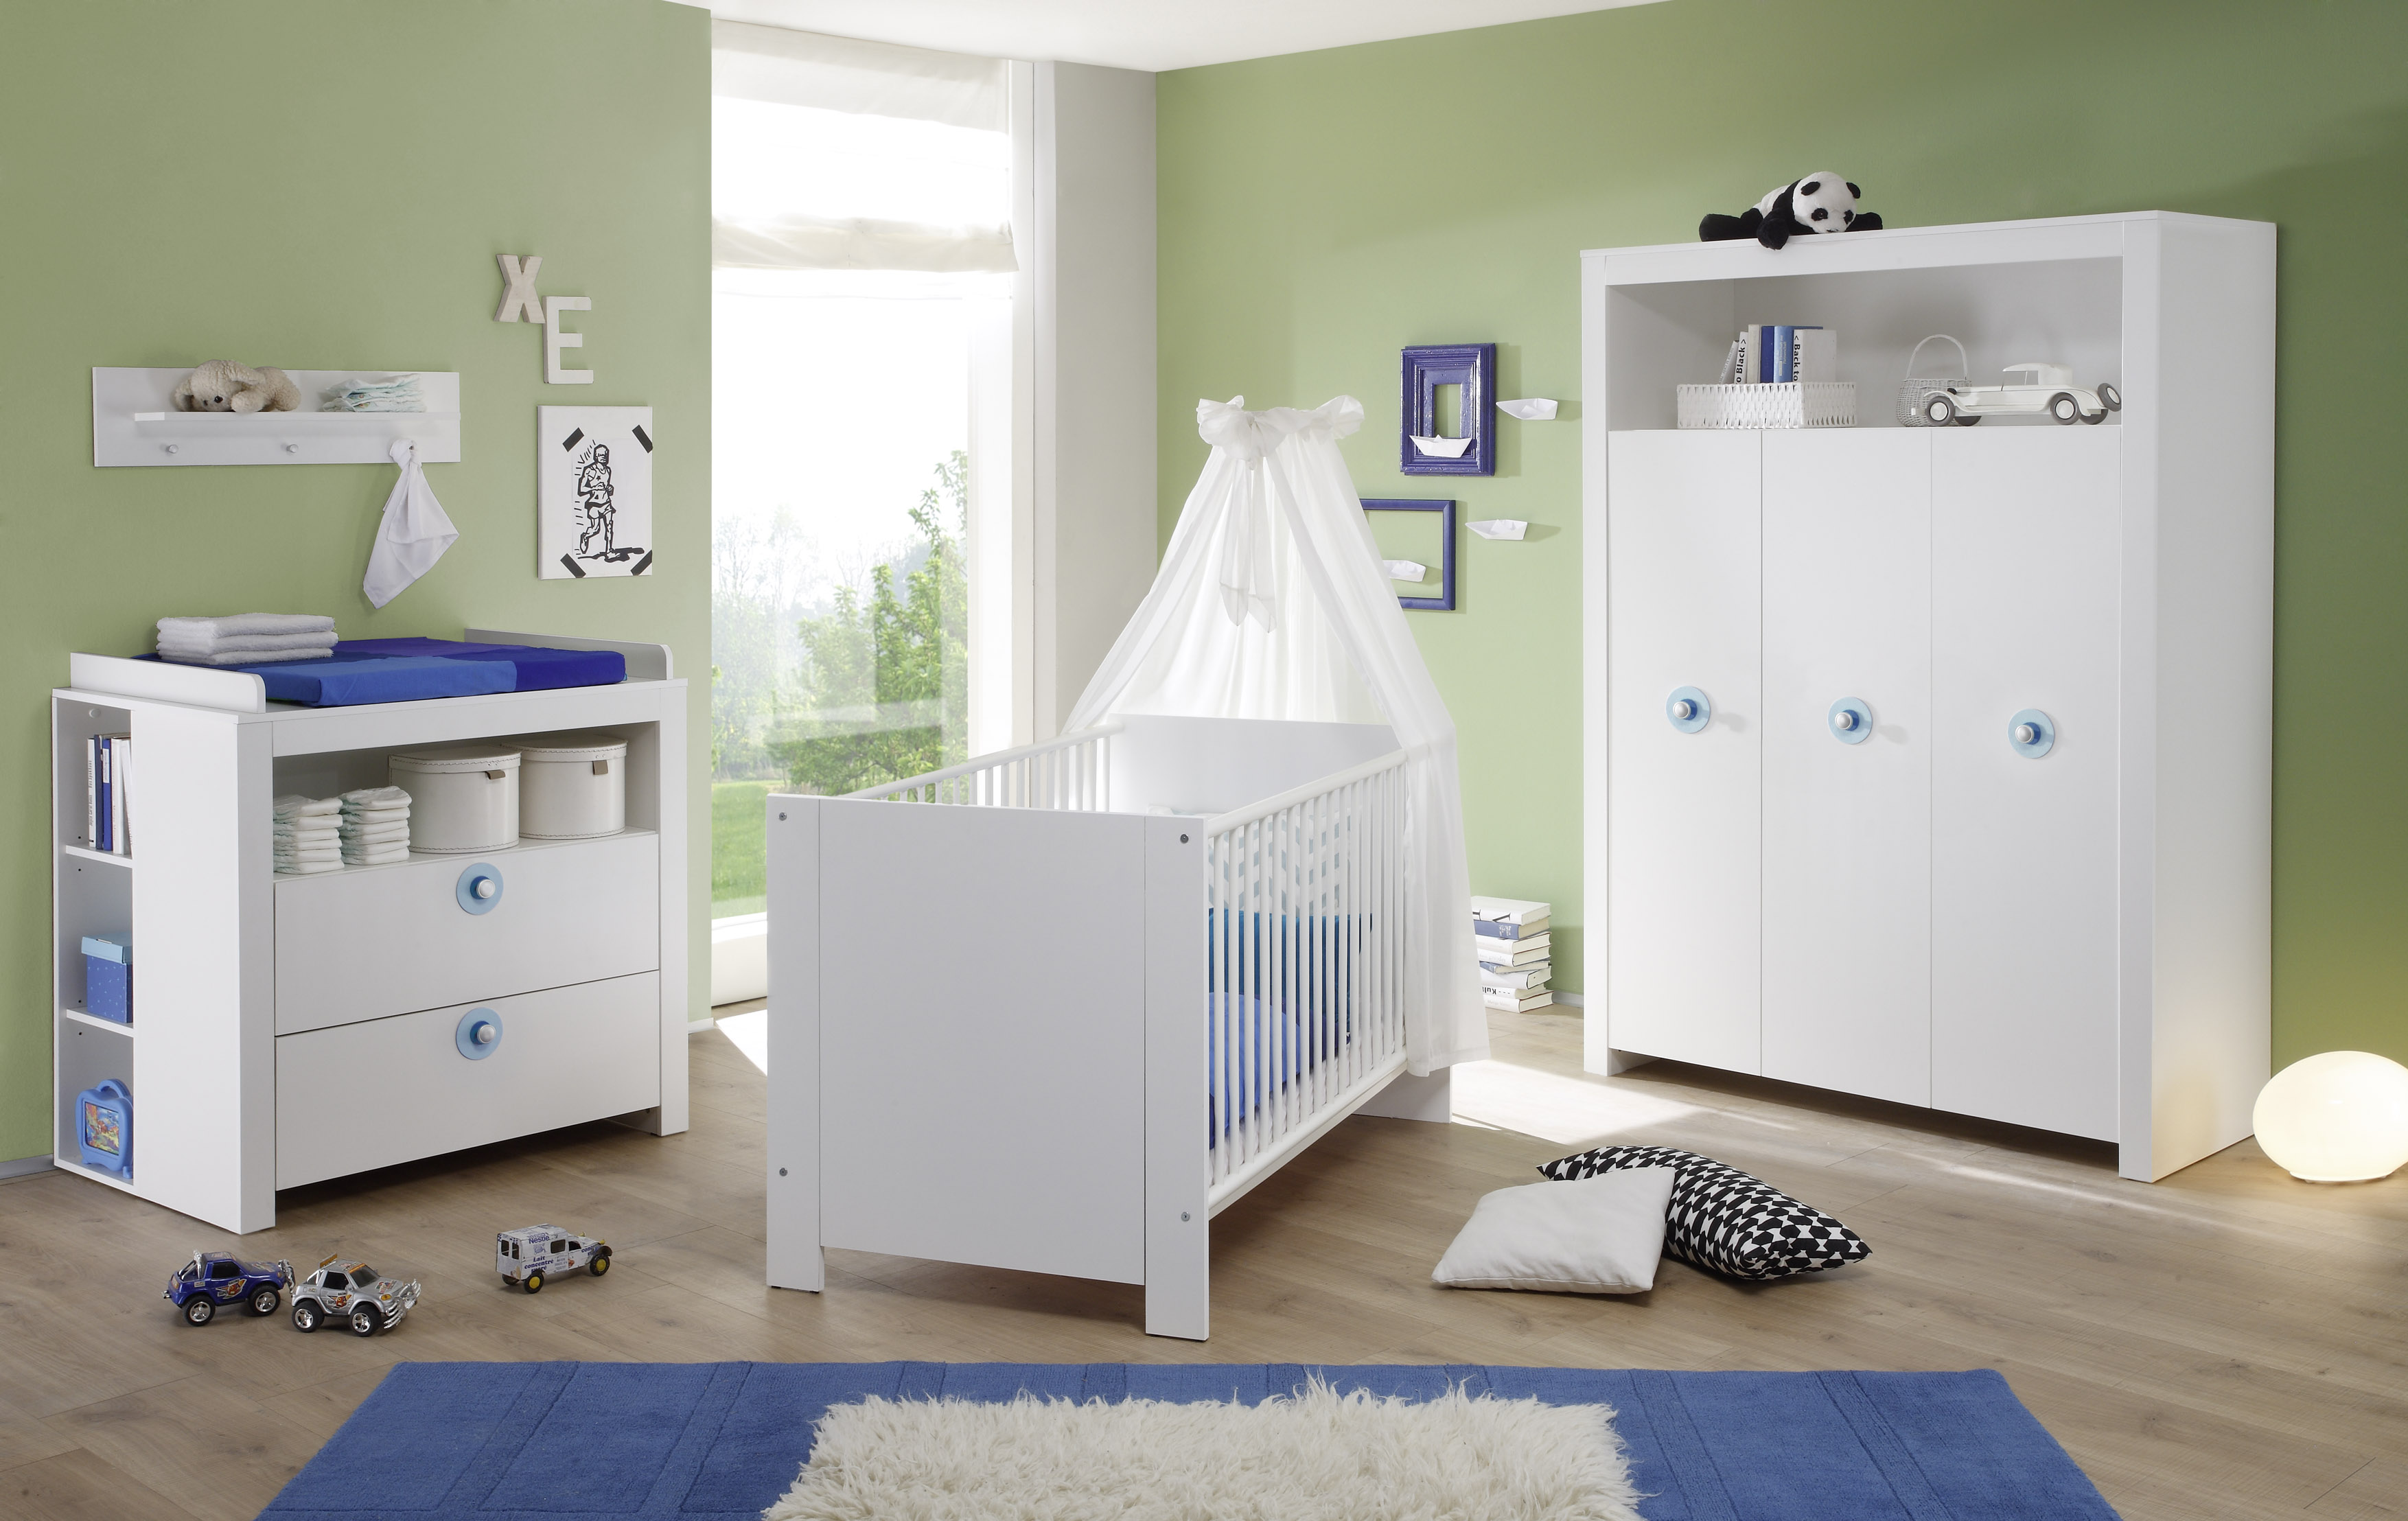 babyzimmerm bel olivia trendteam hellblau dunkelblau. Black Bedroom Furniture Sets. Home Design Ideas